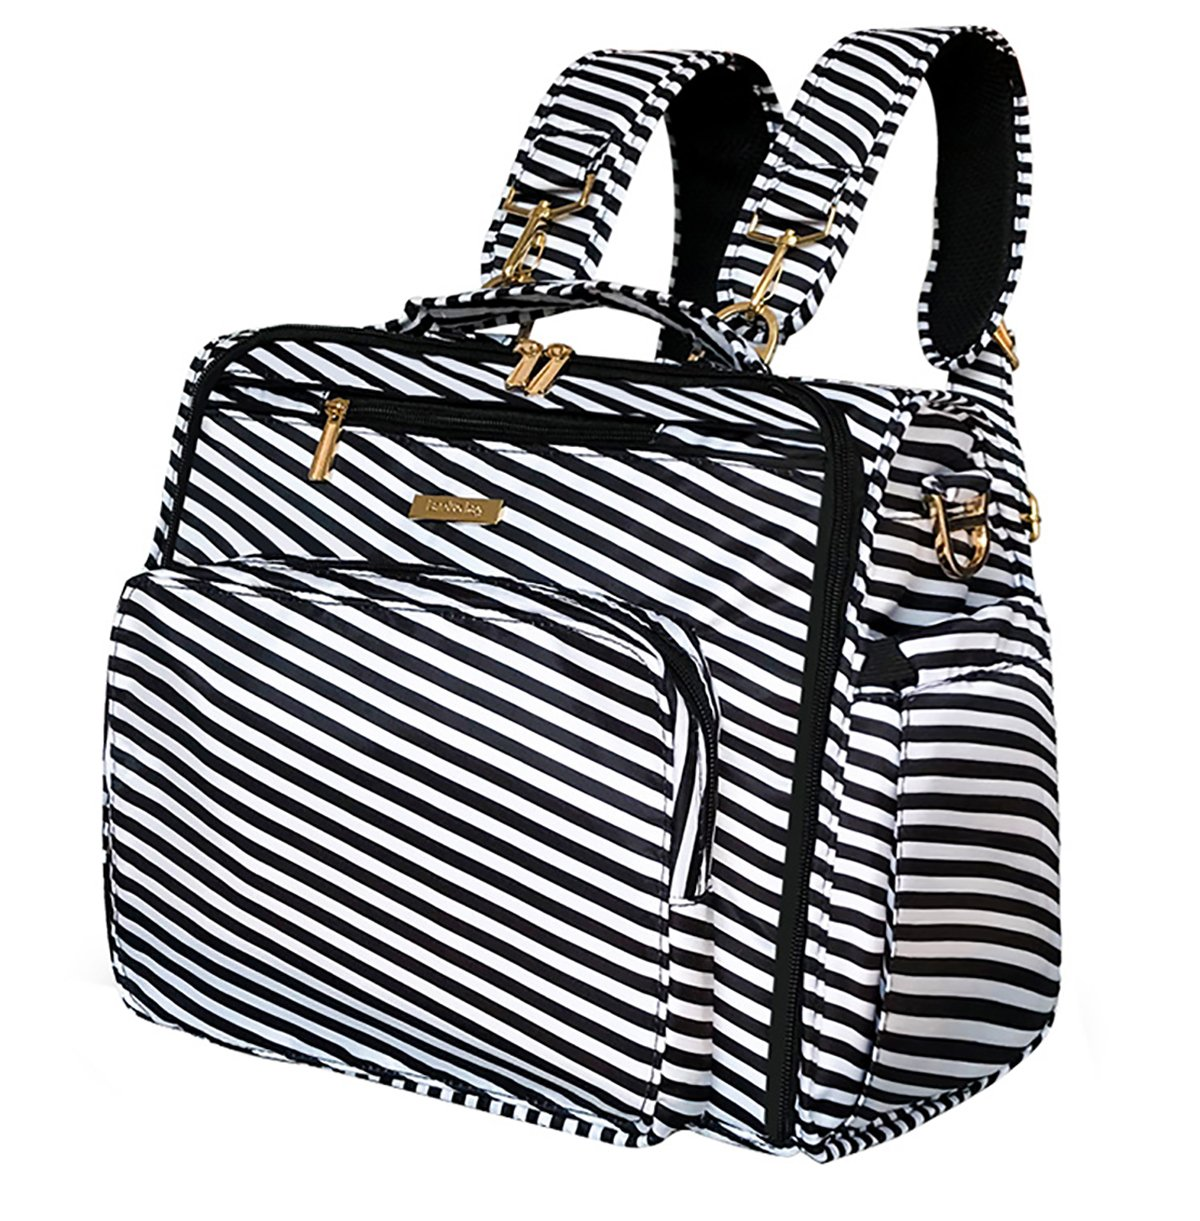 LAND Convertible Diaper Bag Backpack for Baby Boys and Girls Maternity Nappy Bag for Mom (Black) 22056920